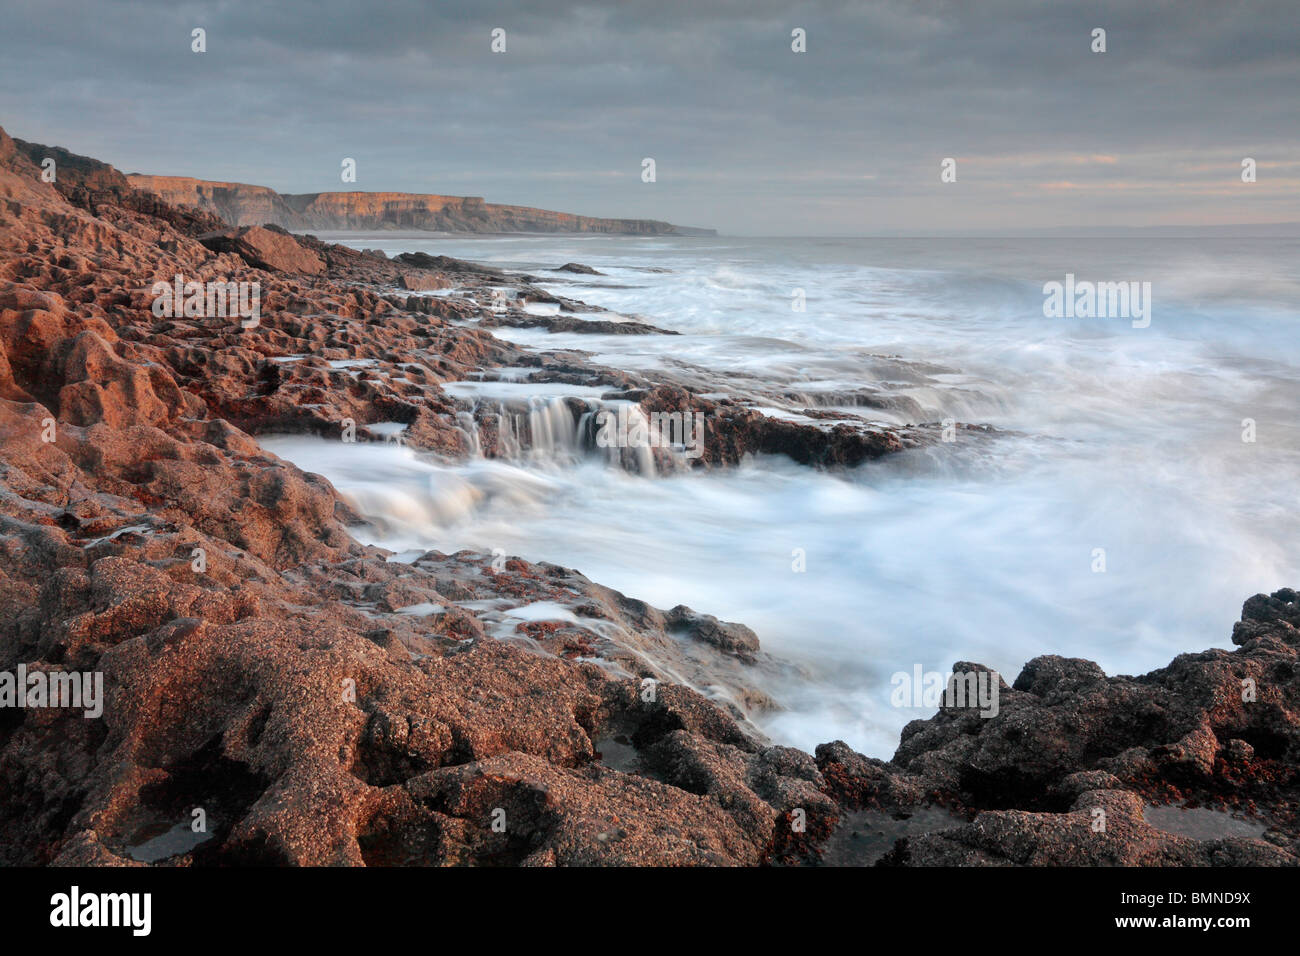 Autumn waves crash against the shores of the Glamorgan Coast in southern Wales - Stock Image